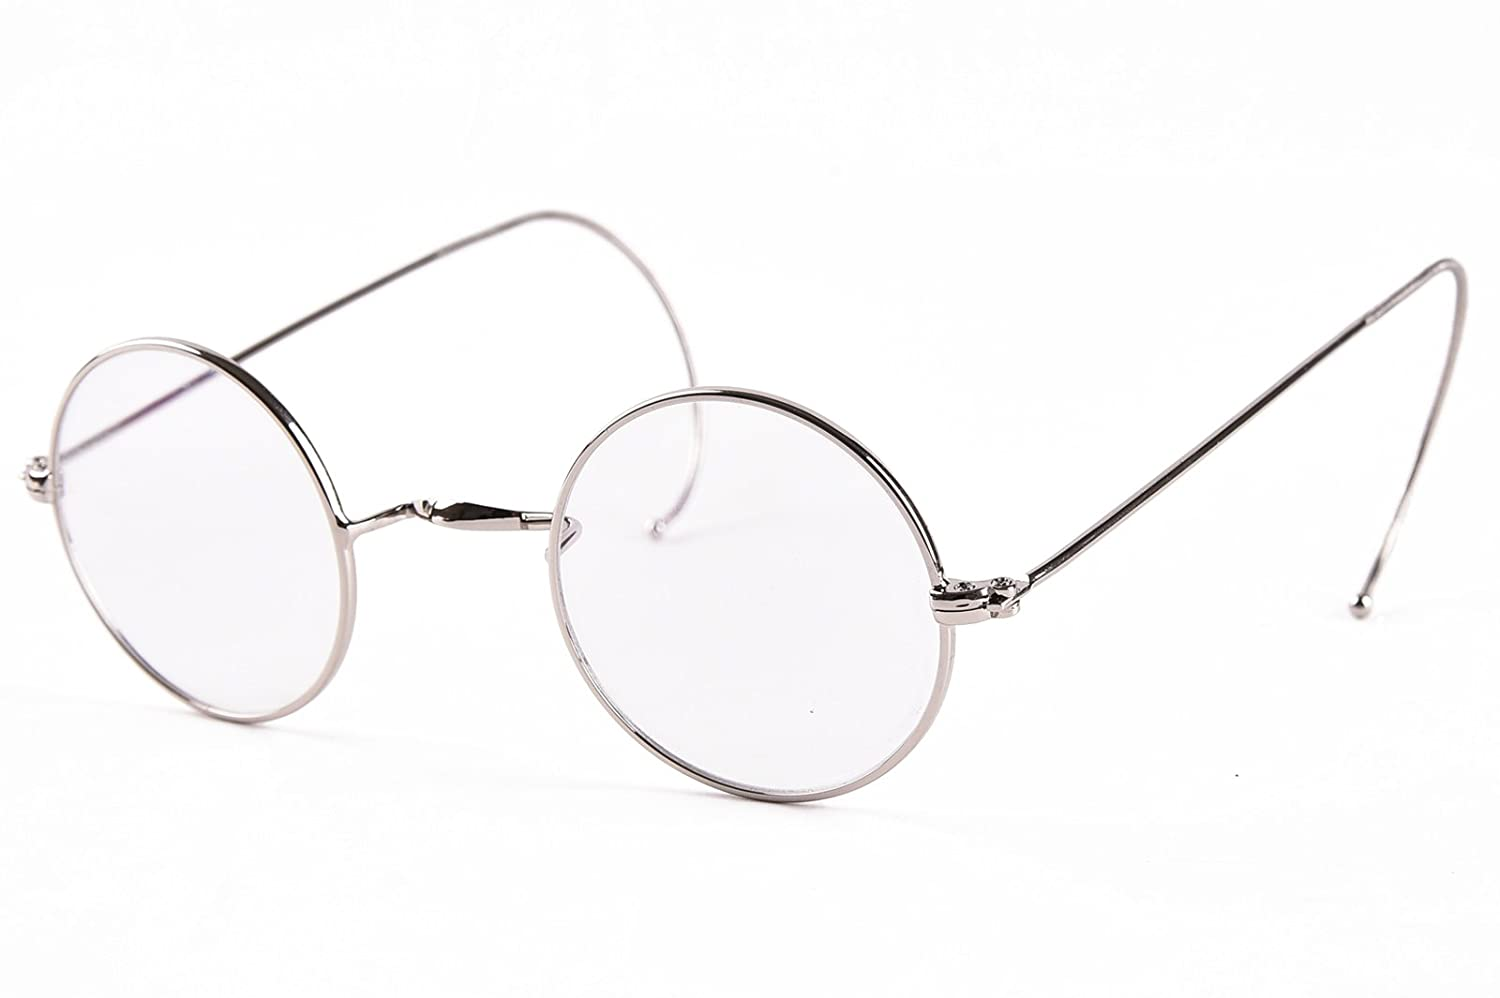 amazoncom agstum retro small round optical rare wire rim eyeglasses frame 39mm gold 39mm clothing - Wire Frame Glasses